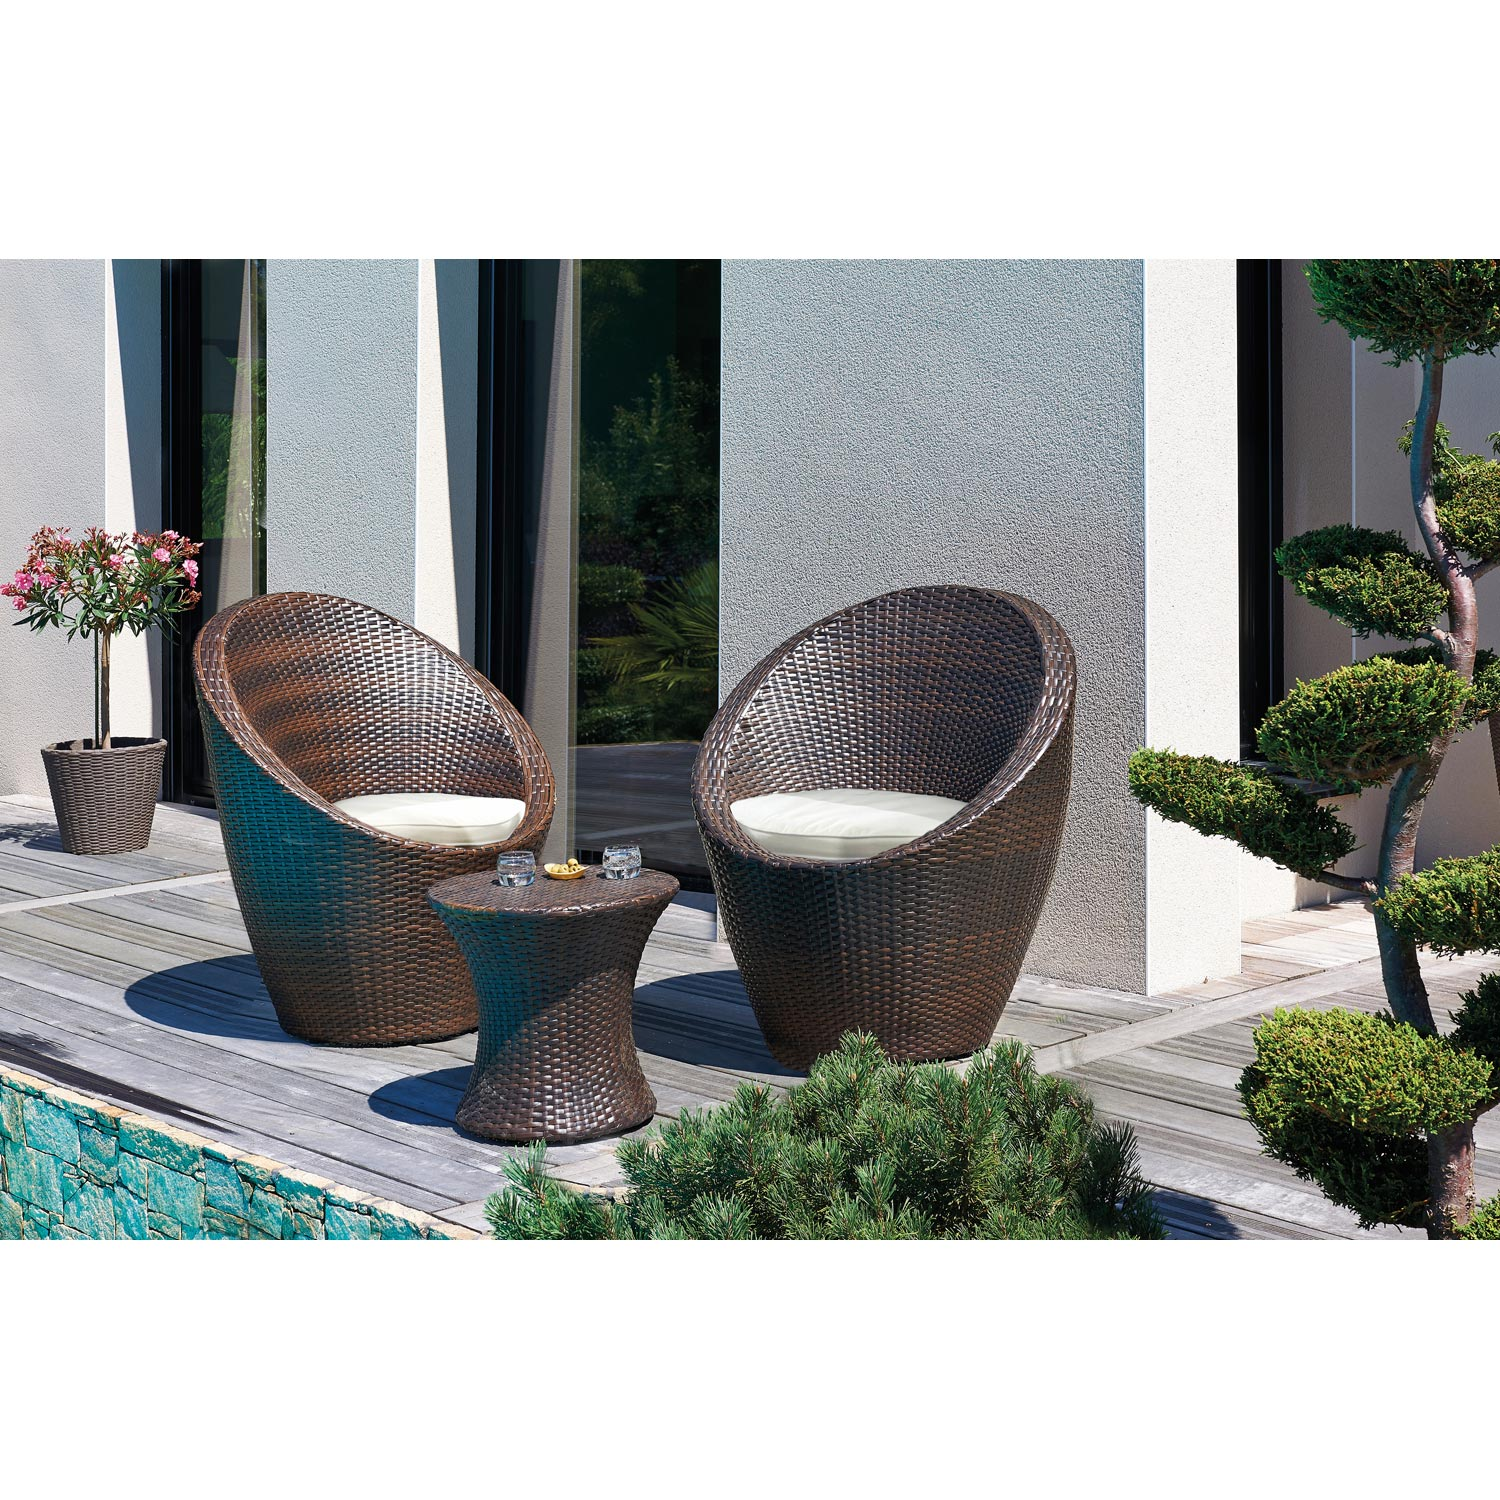 Salon bas de jardin totem r sine tress e chocolat 1 table 2 fauteuils leroy merlin - Leroy merlin salon jardin resine toulon ...